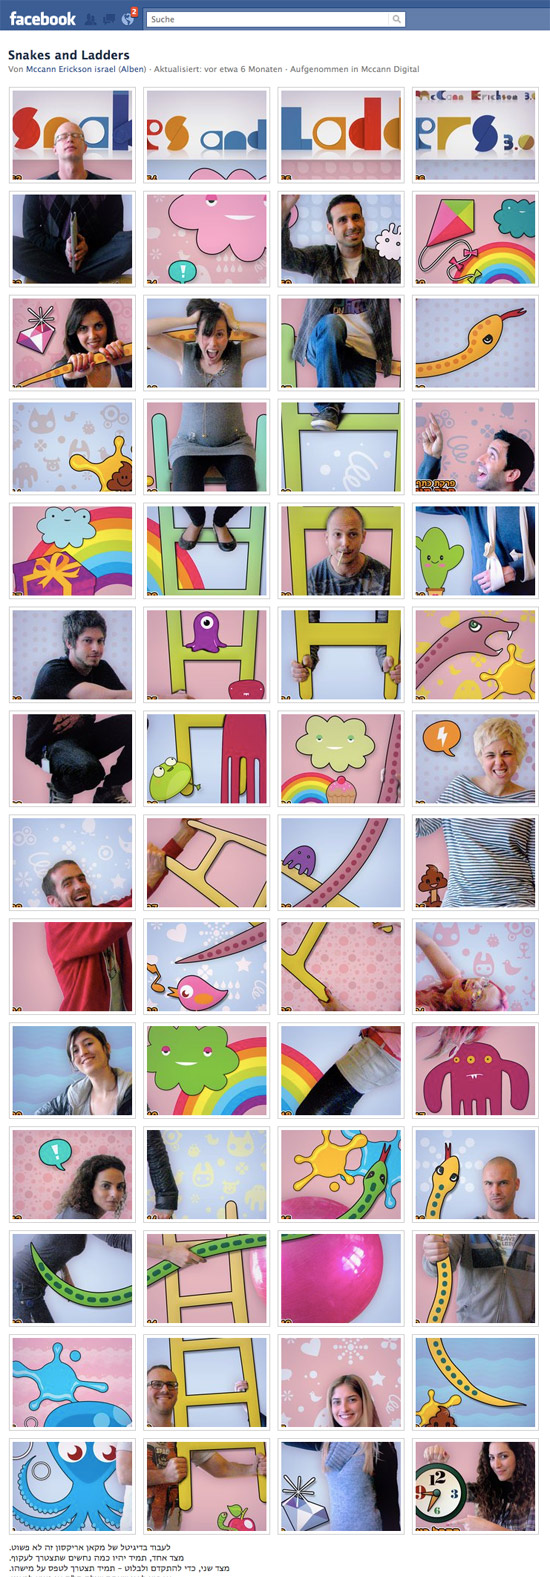 Facebook Photogallery Snakes and Ladders